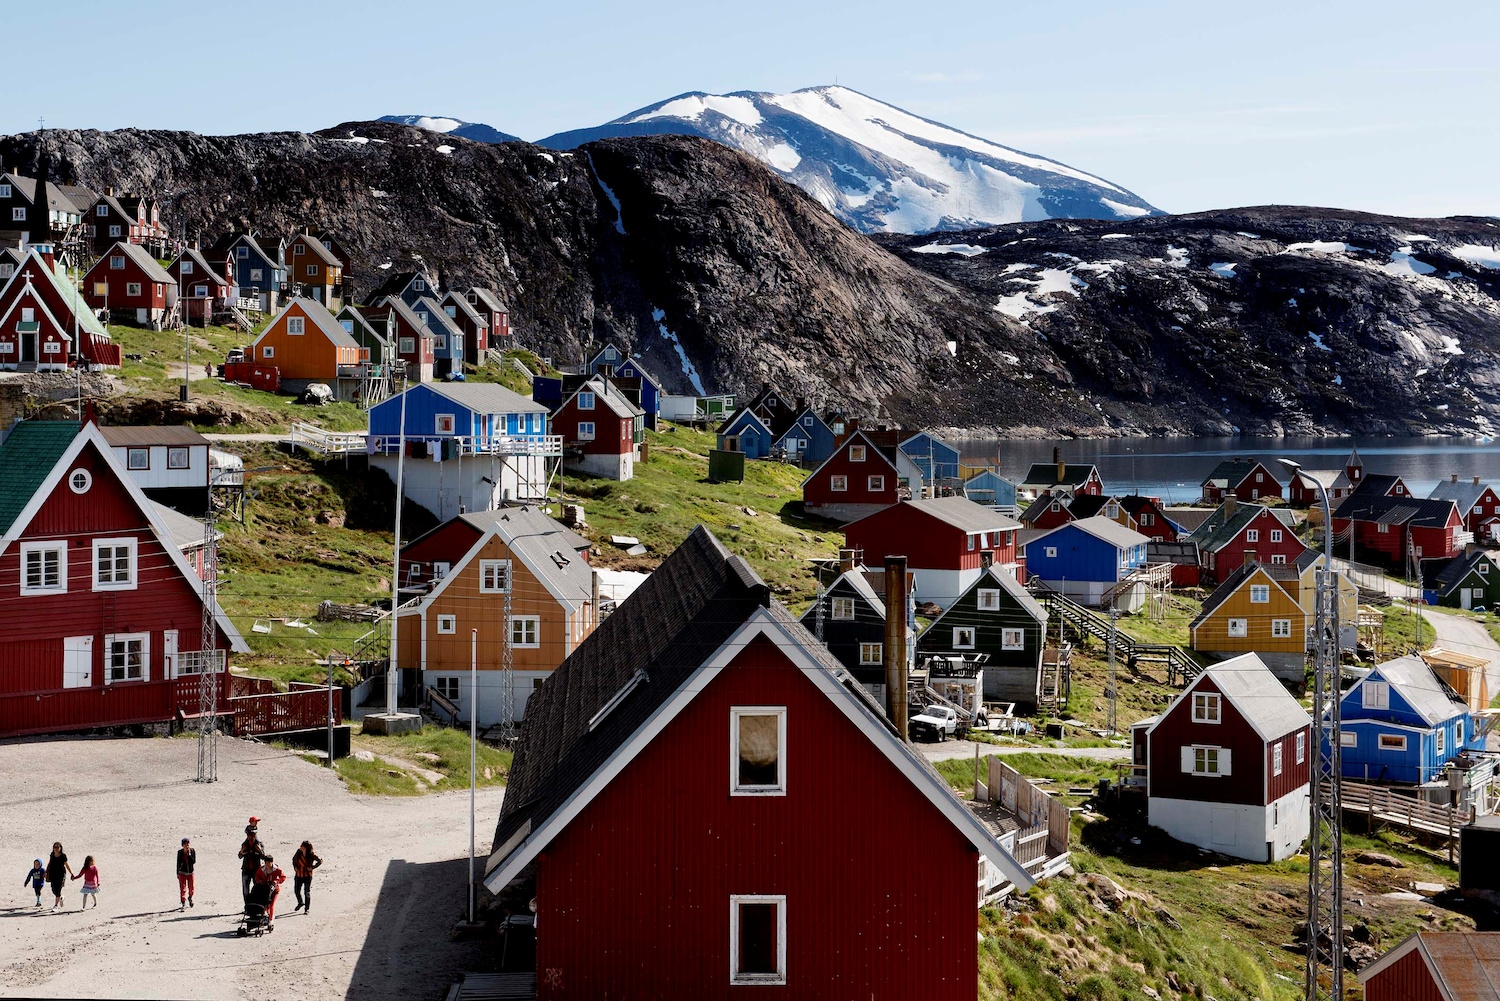 Danish politicians, citizens lash out at Trump's reported interest to buy Greenland